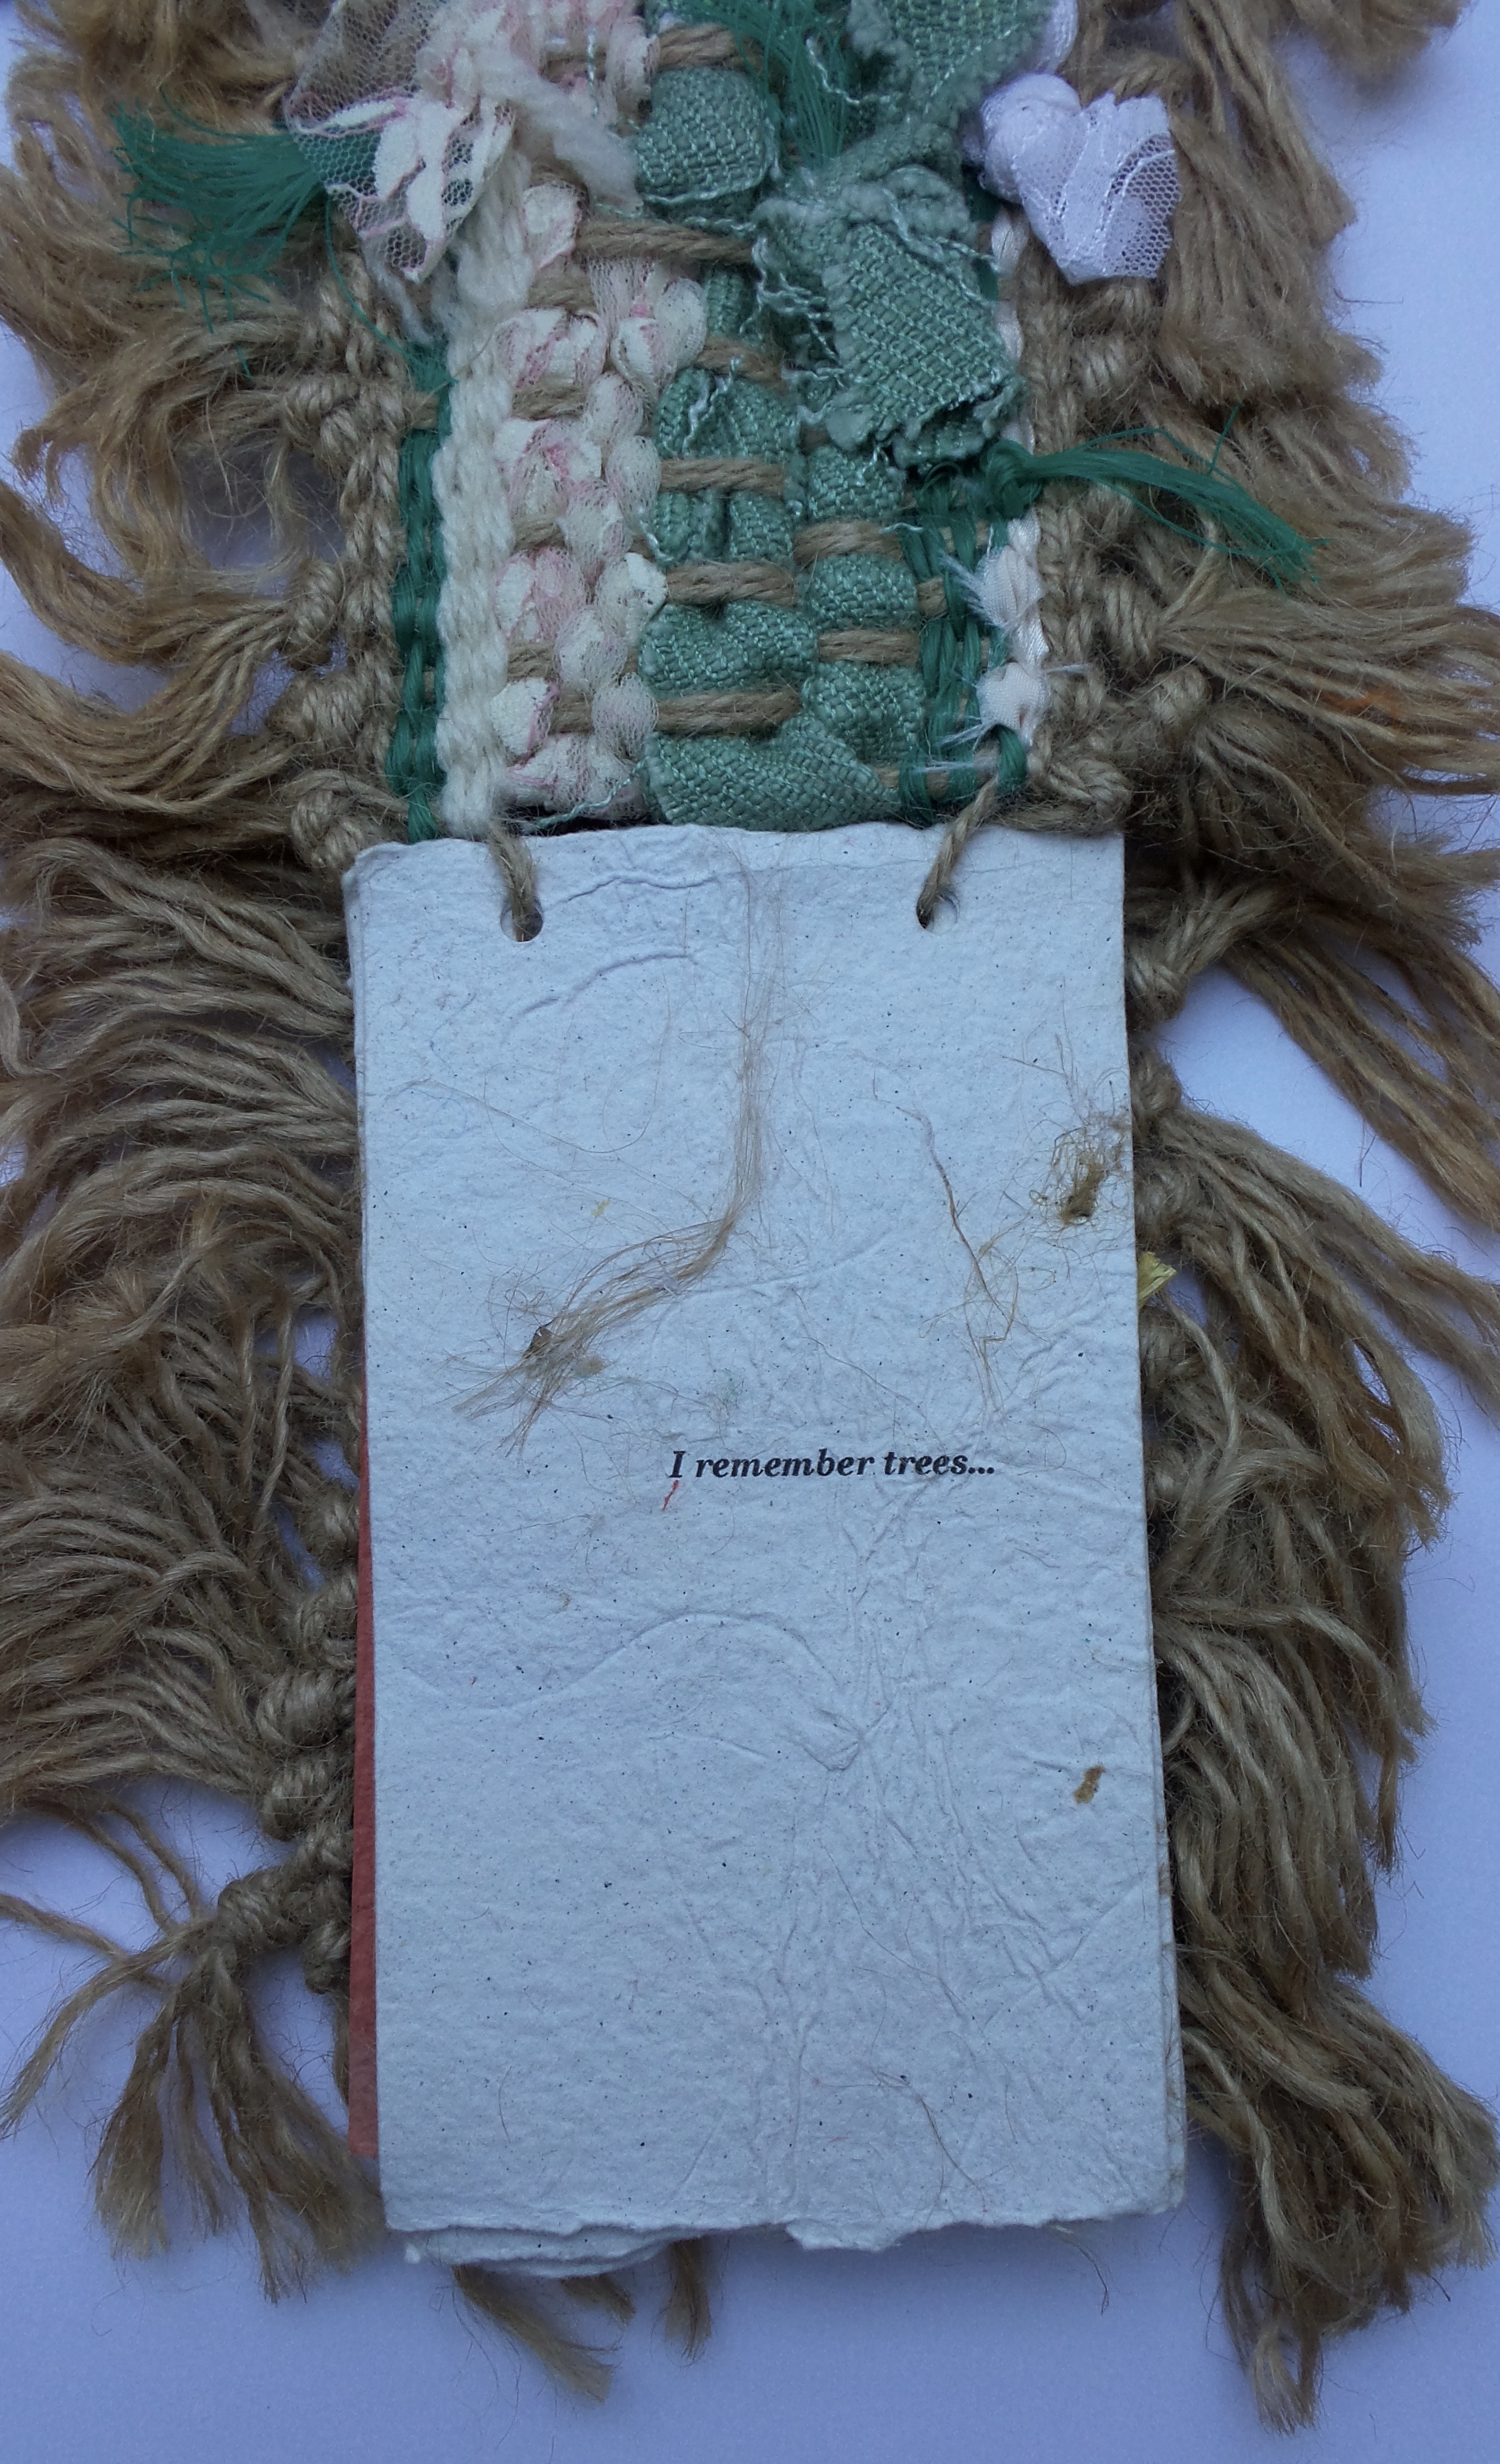 'new leaves', exhibition book by older people - memories of trees(2)